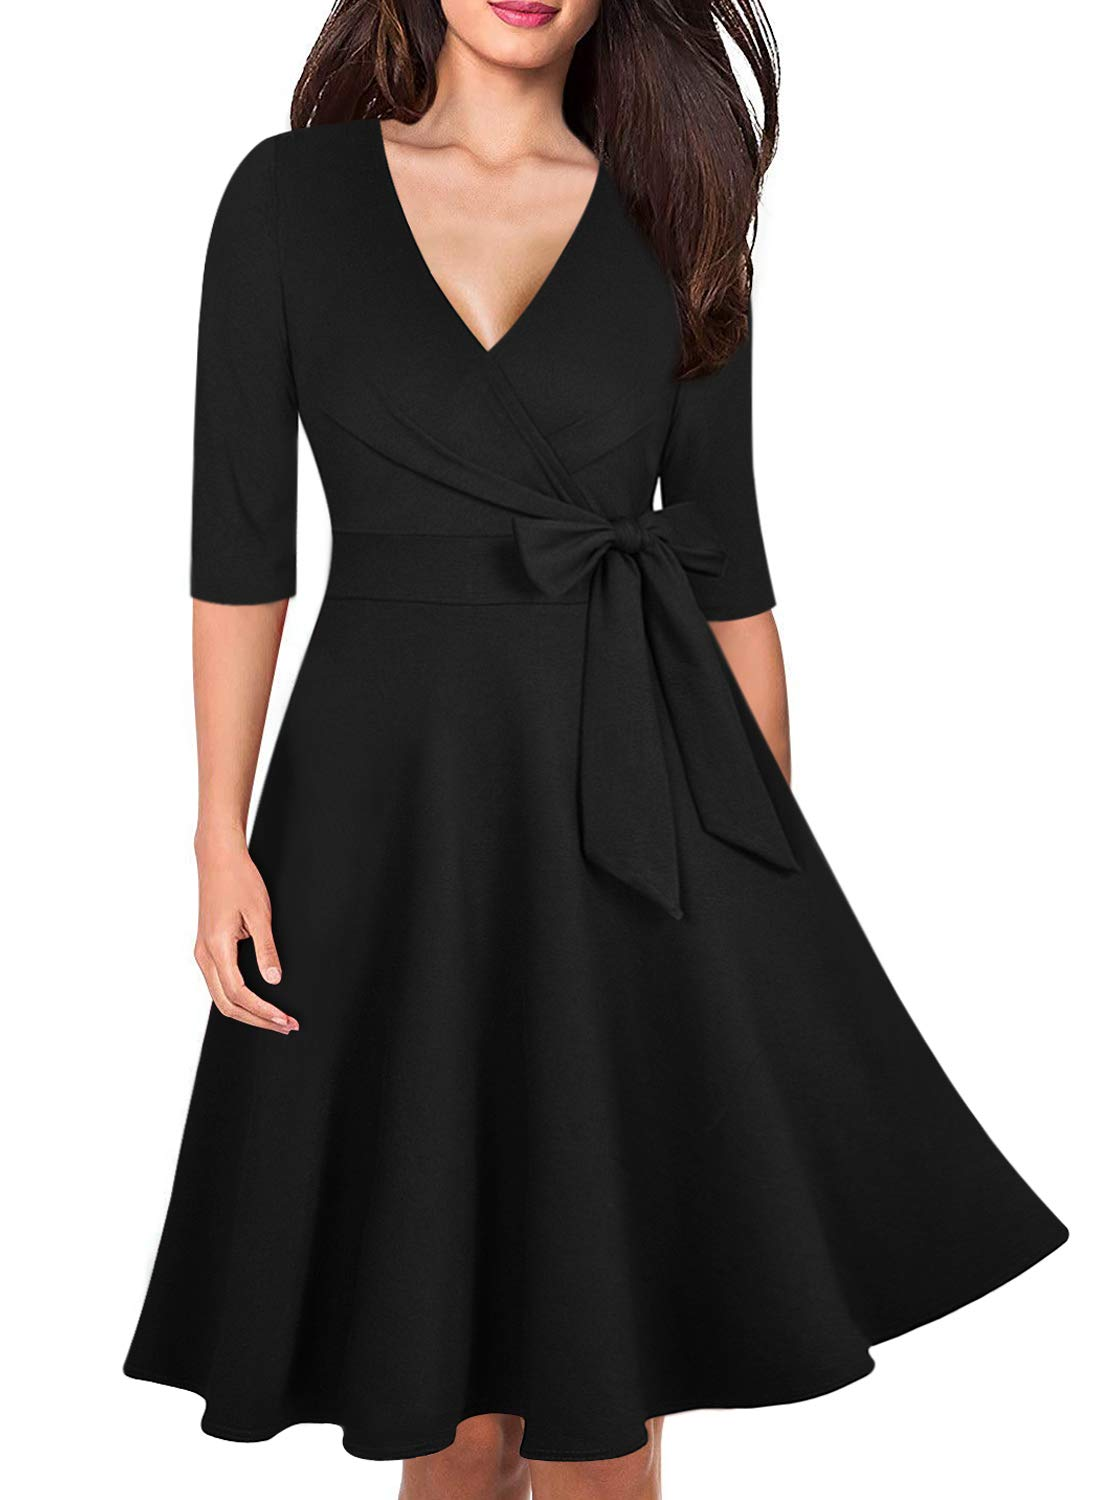 Ranphee Womens 3/4 Sleeve Cotton Flattering Fit and Flare Faux Wrap Dresses